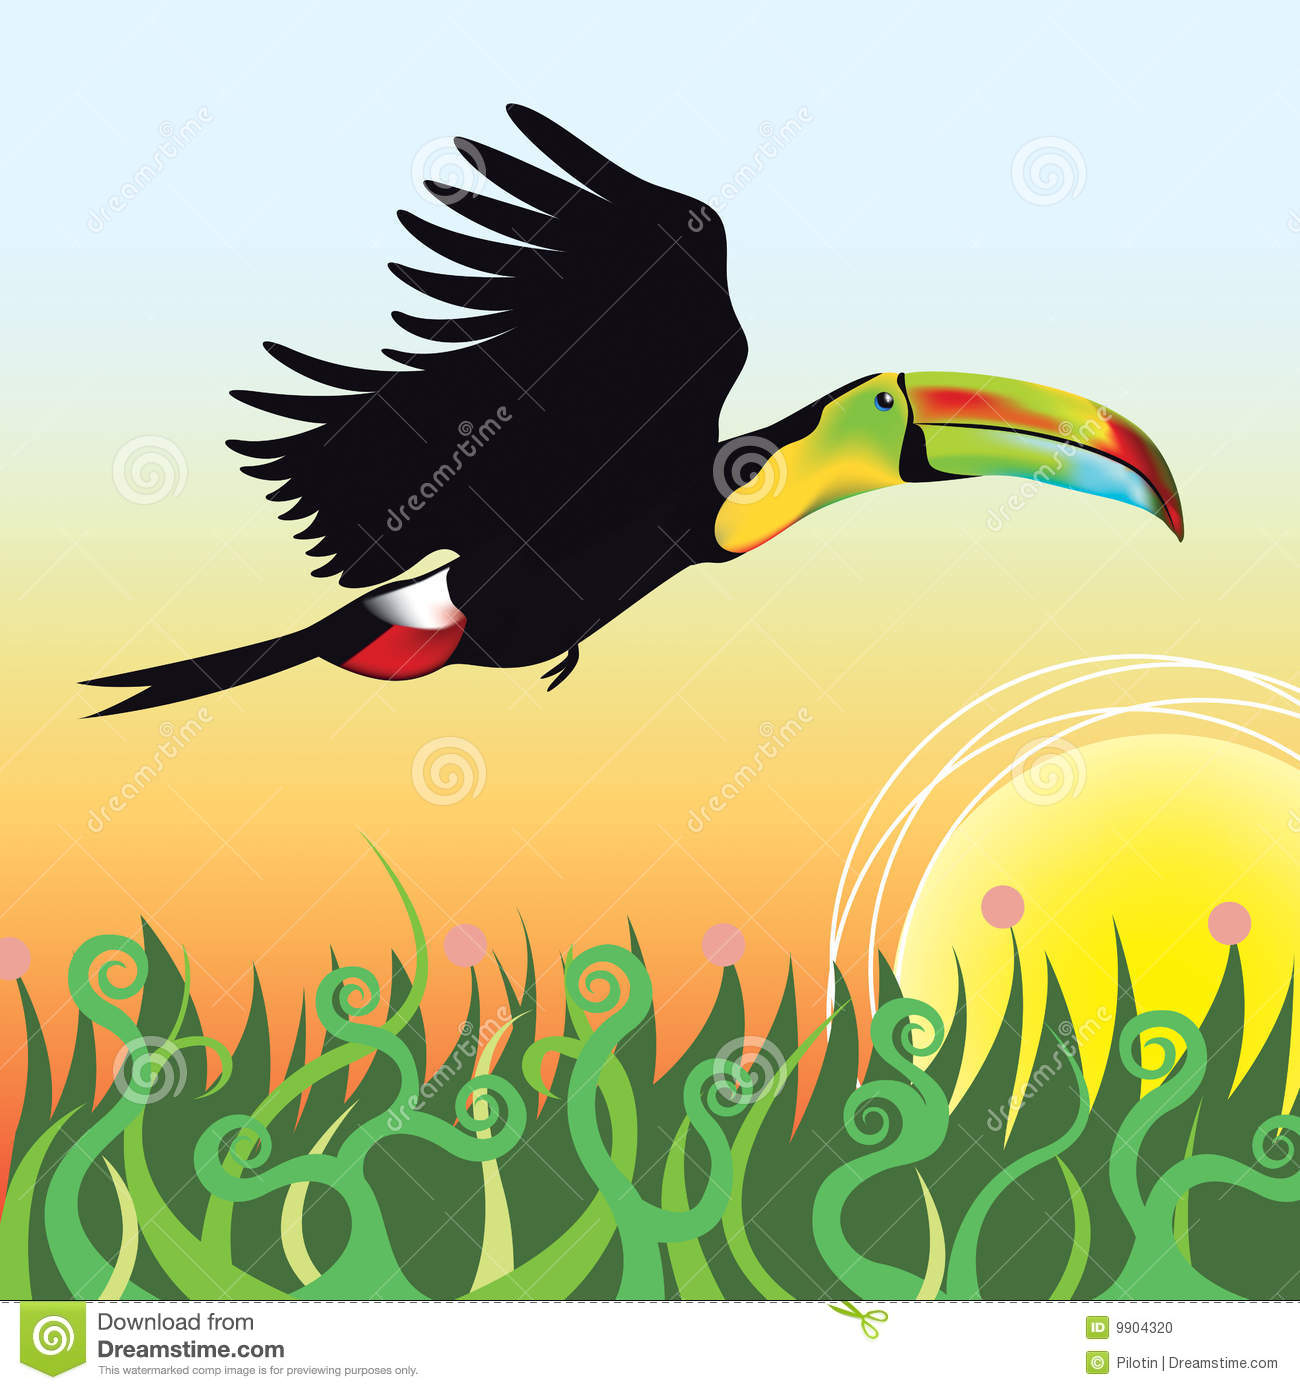 Toucanet clipart #5, Download drawings